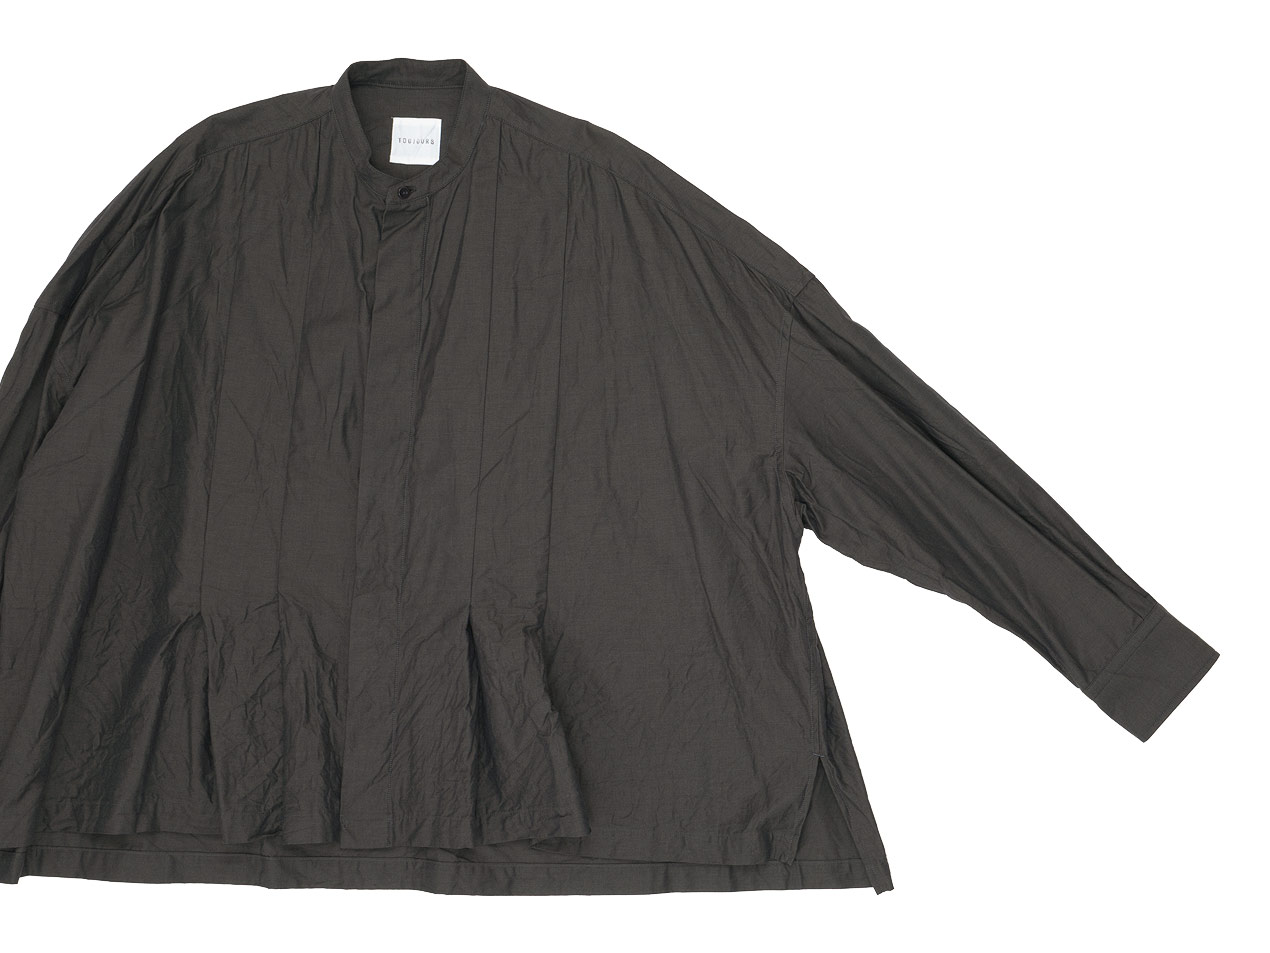 TOUJOURS Wide Tuck Shirt OLIVE BROWN【KM31KS01】